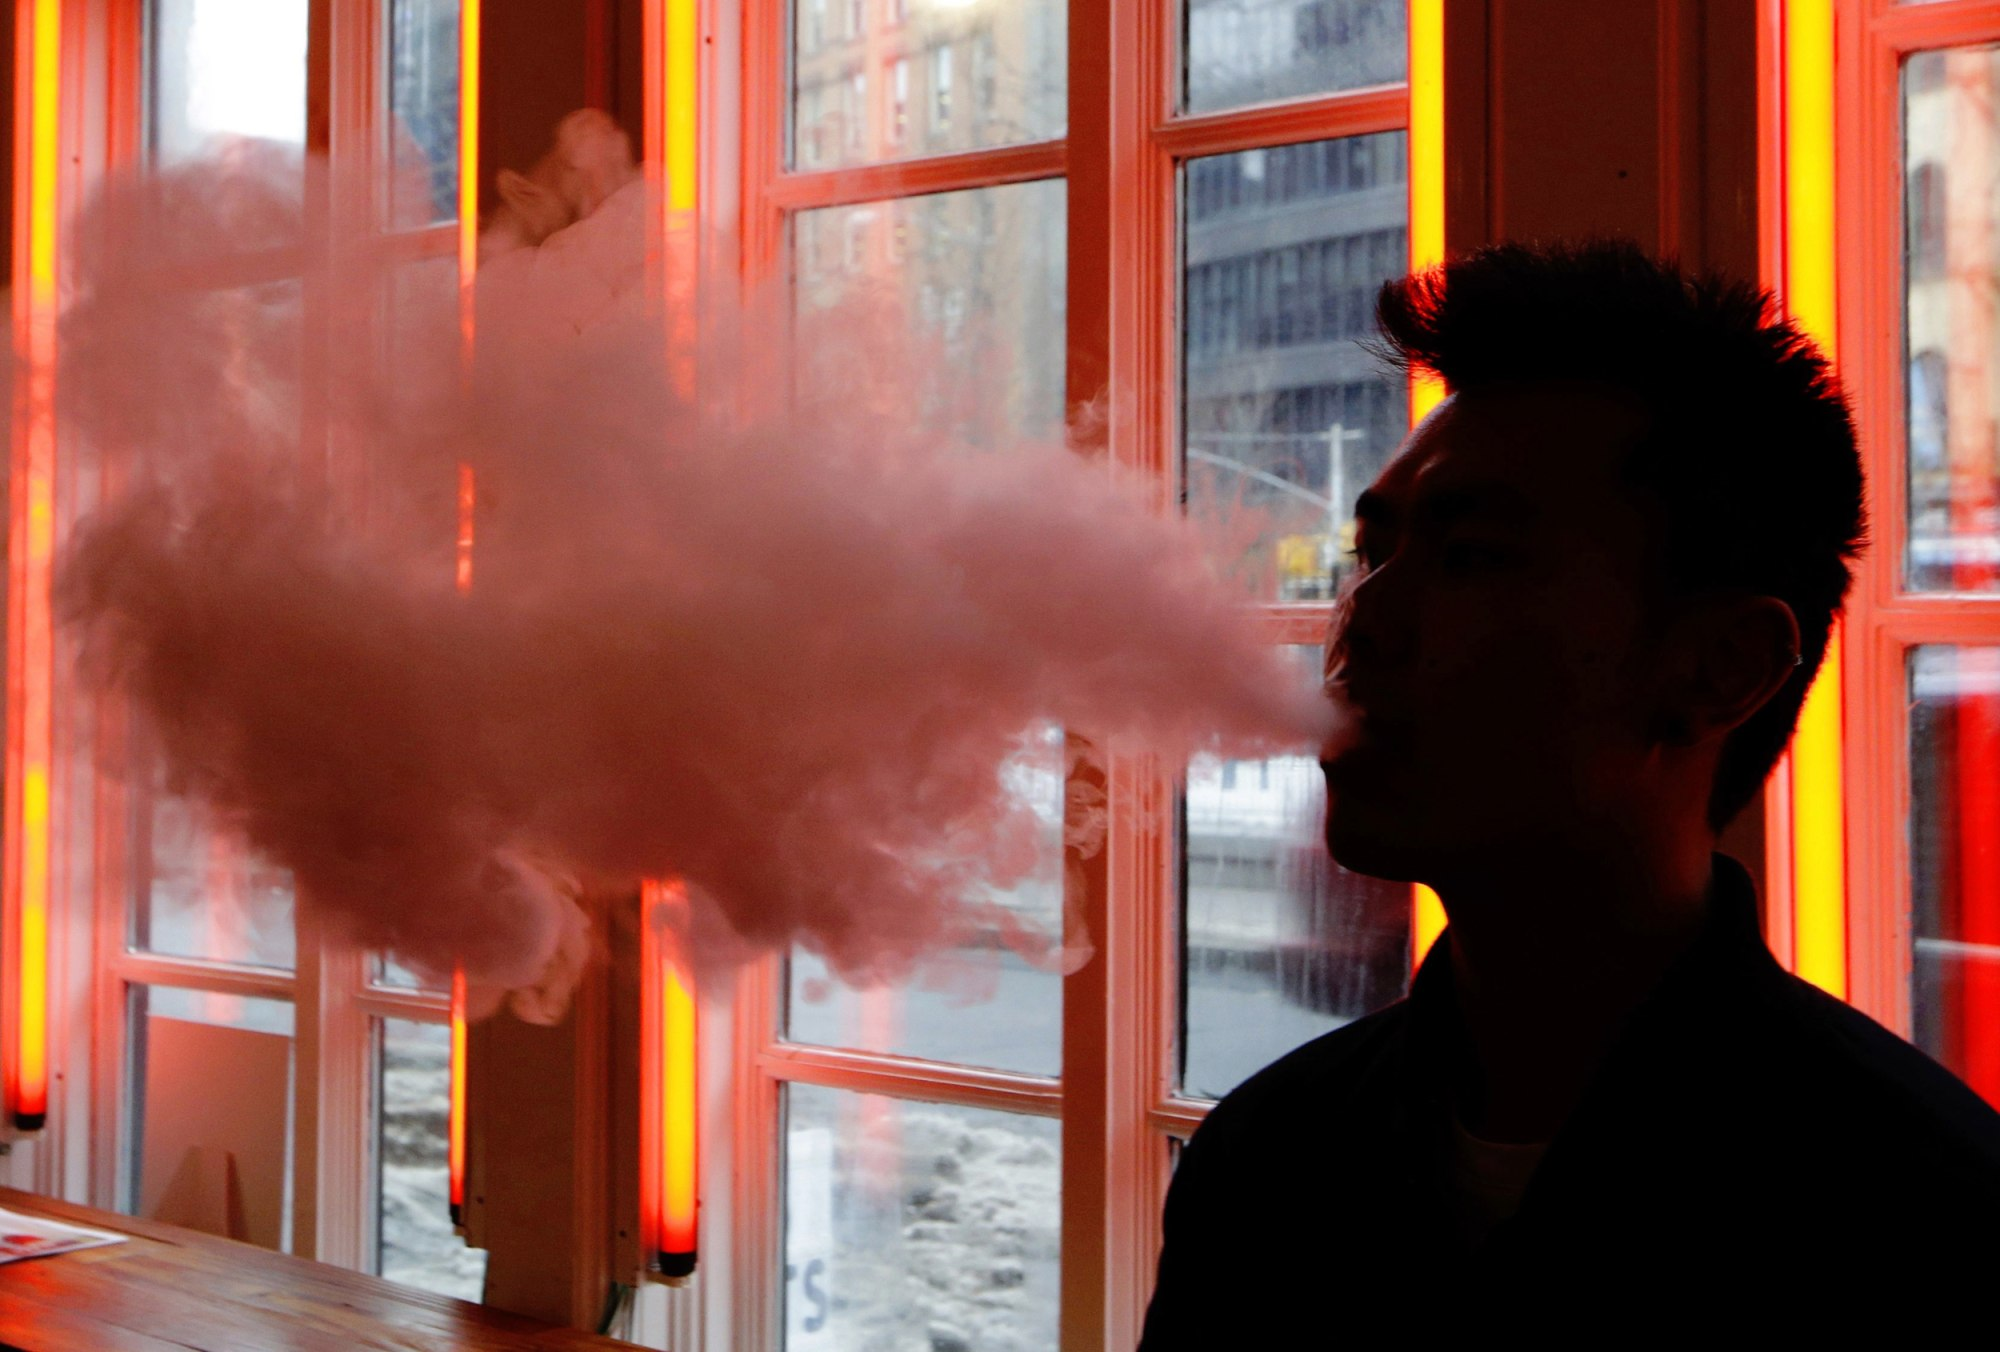 Cases of vaping-linked breathing problems now in 8 states